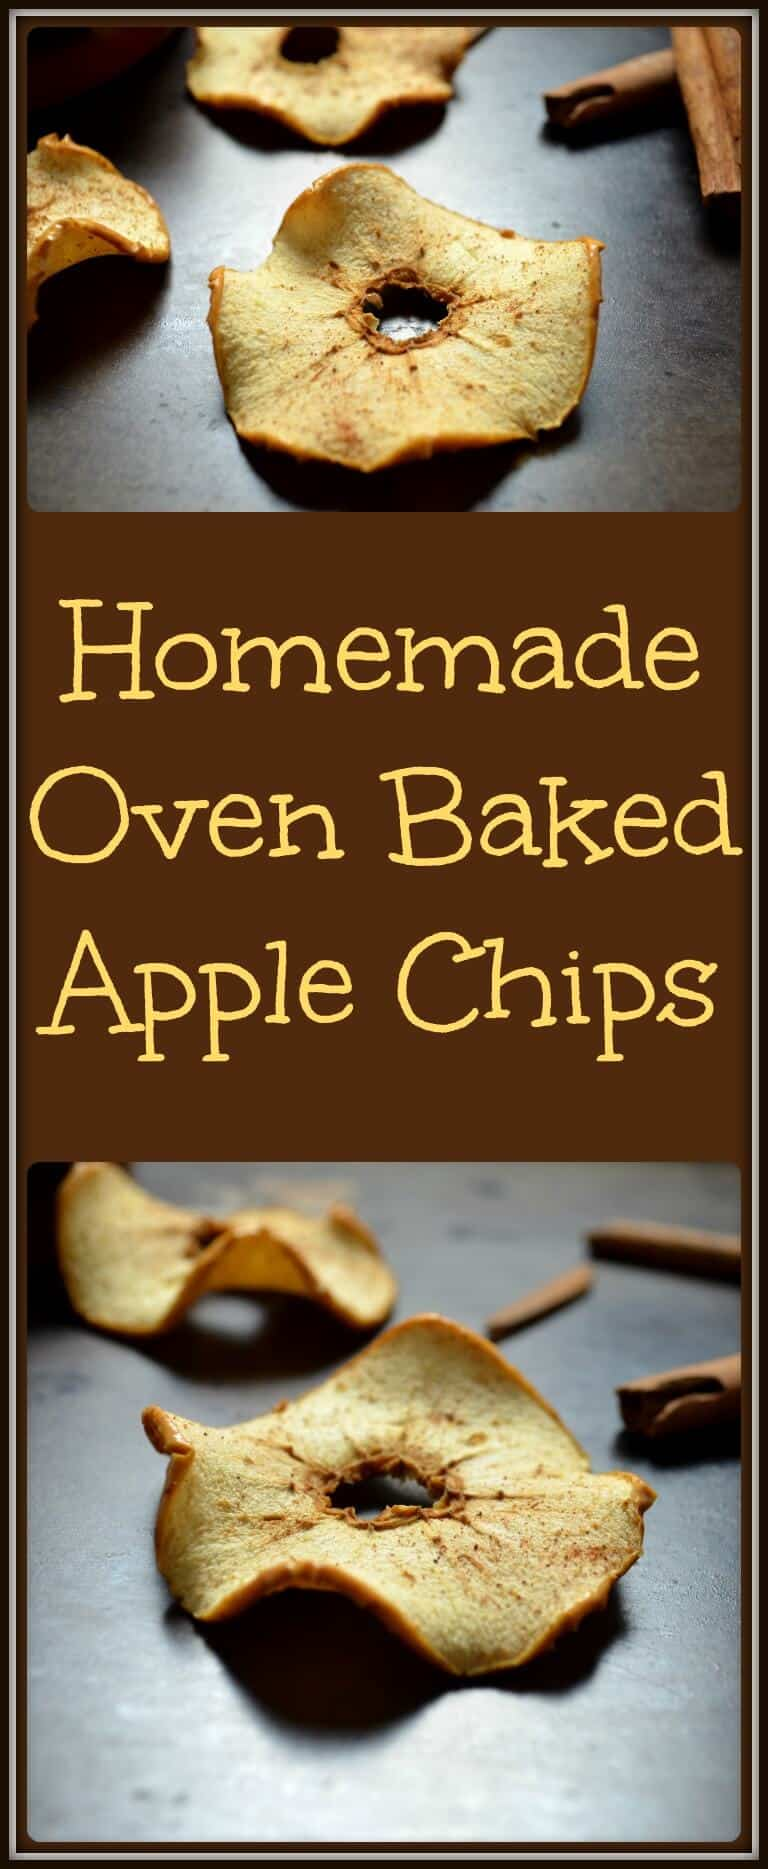 Homemade Oven Baked Apple Chips